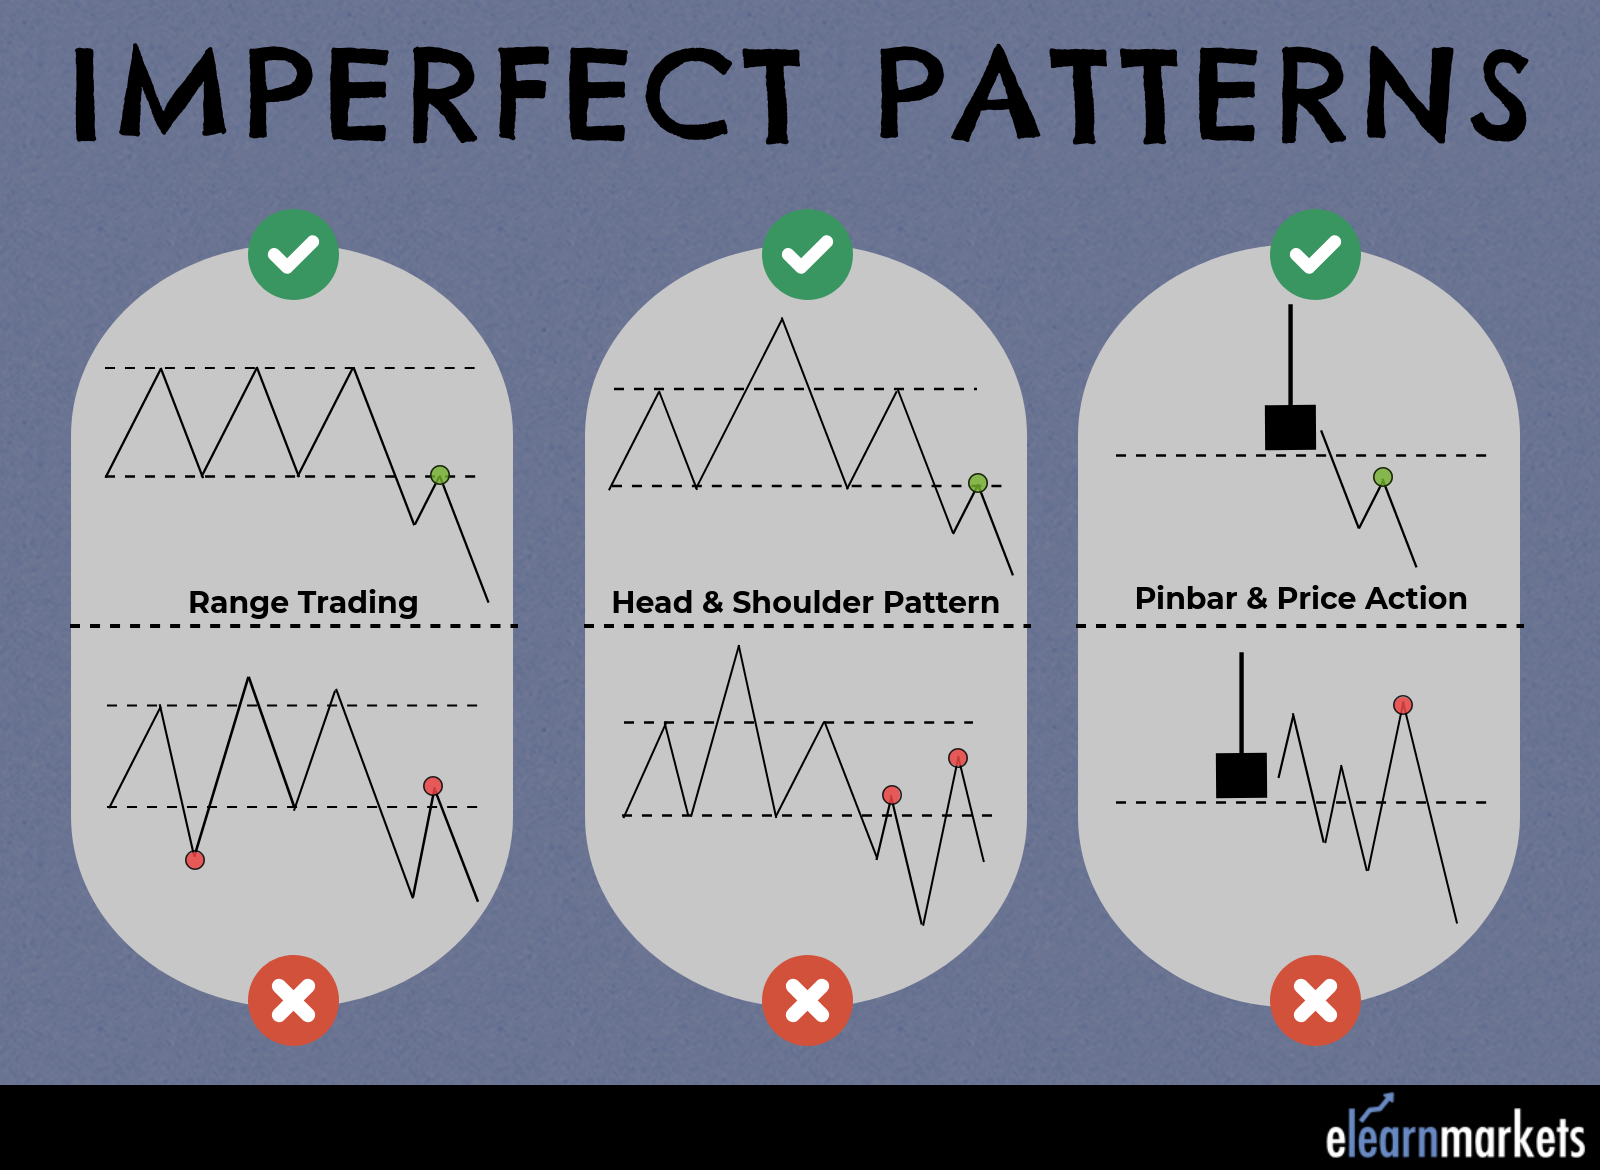 Imperfect Patterns in technical analysis